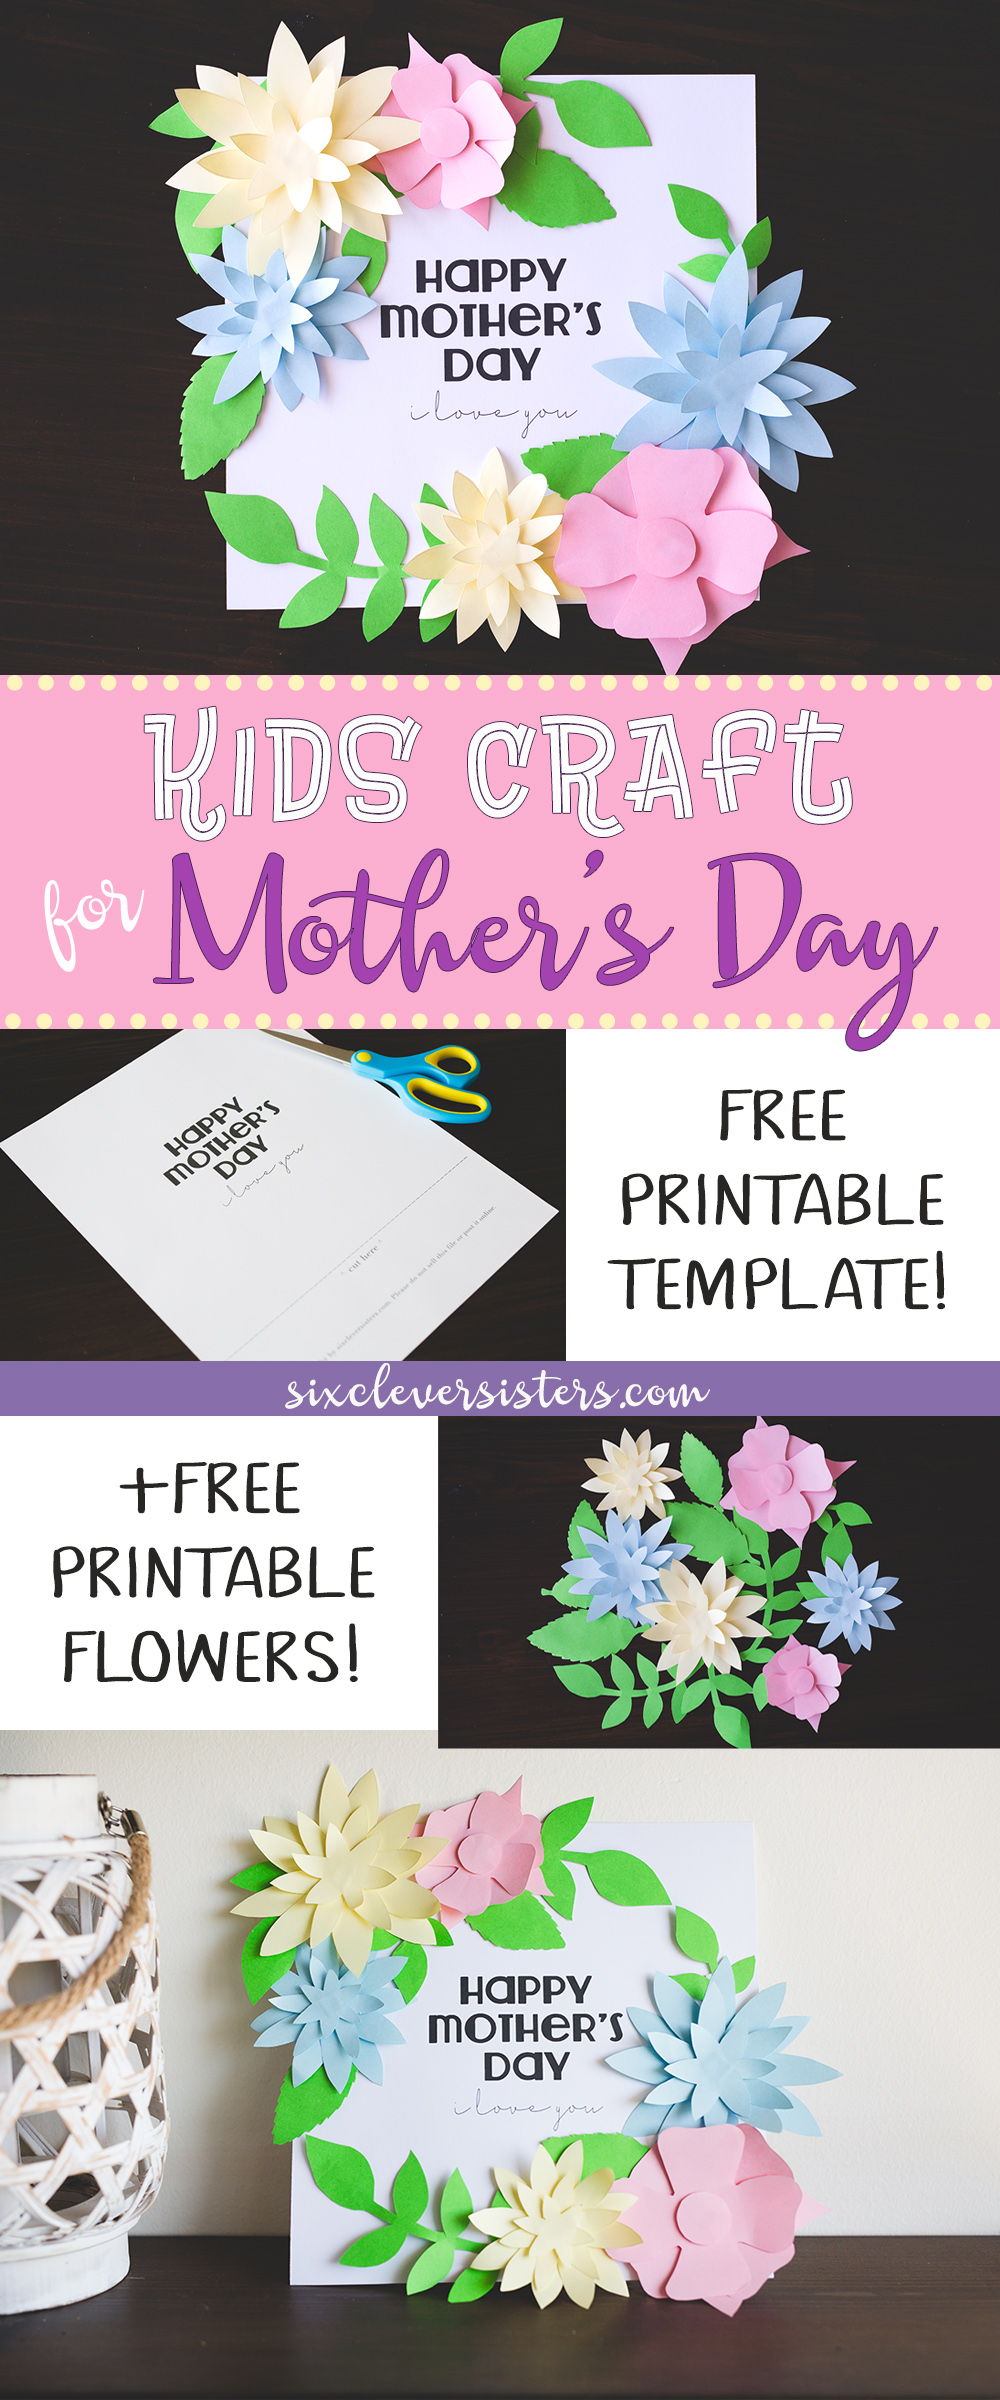 mother 39 s day crafts for kids free printable templates six clever sisters. Black Bedroom Furniture Sets. Home Design Ideas